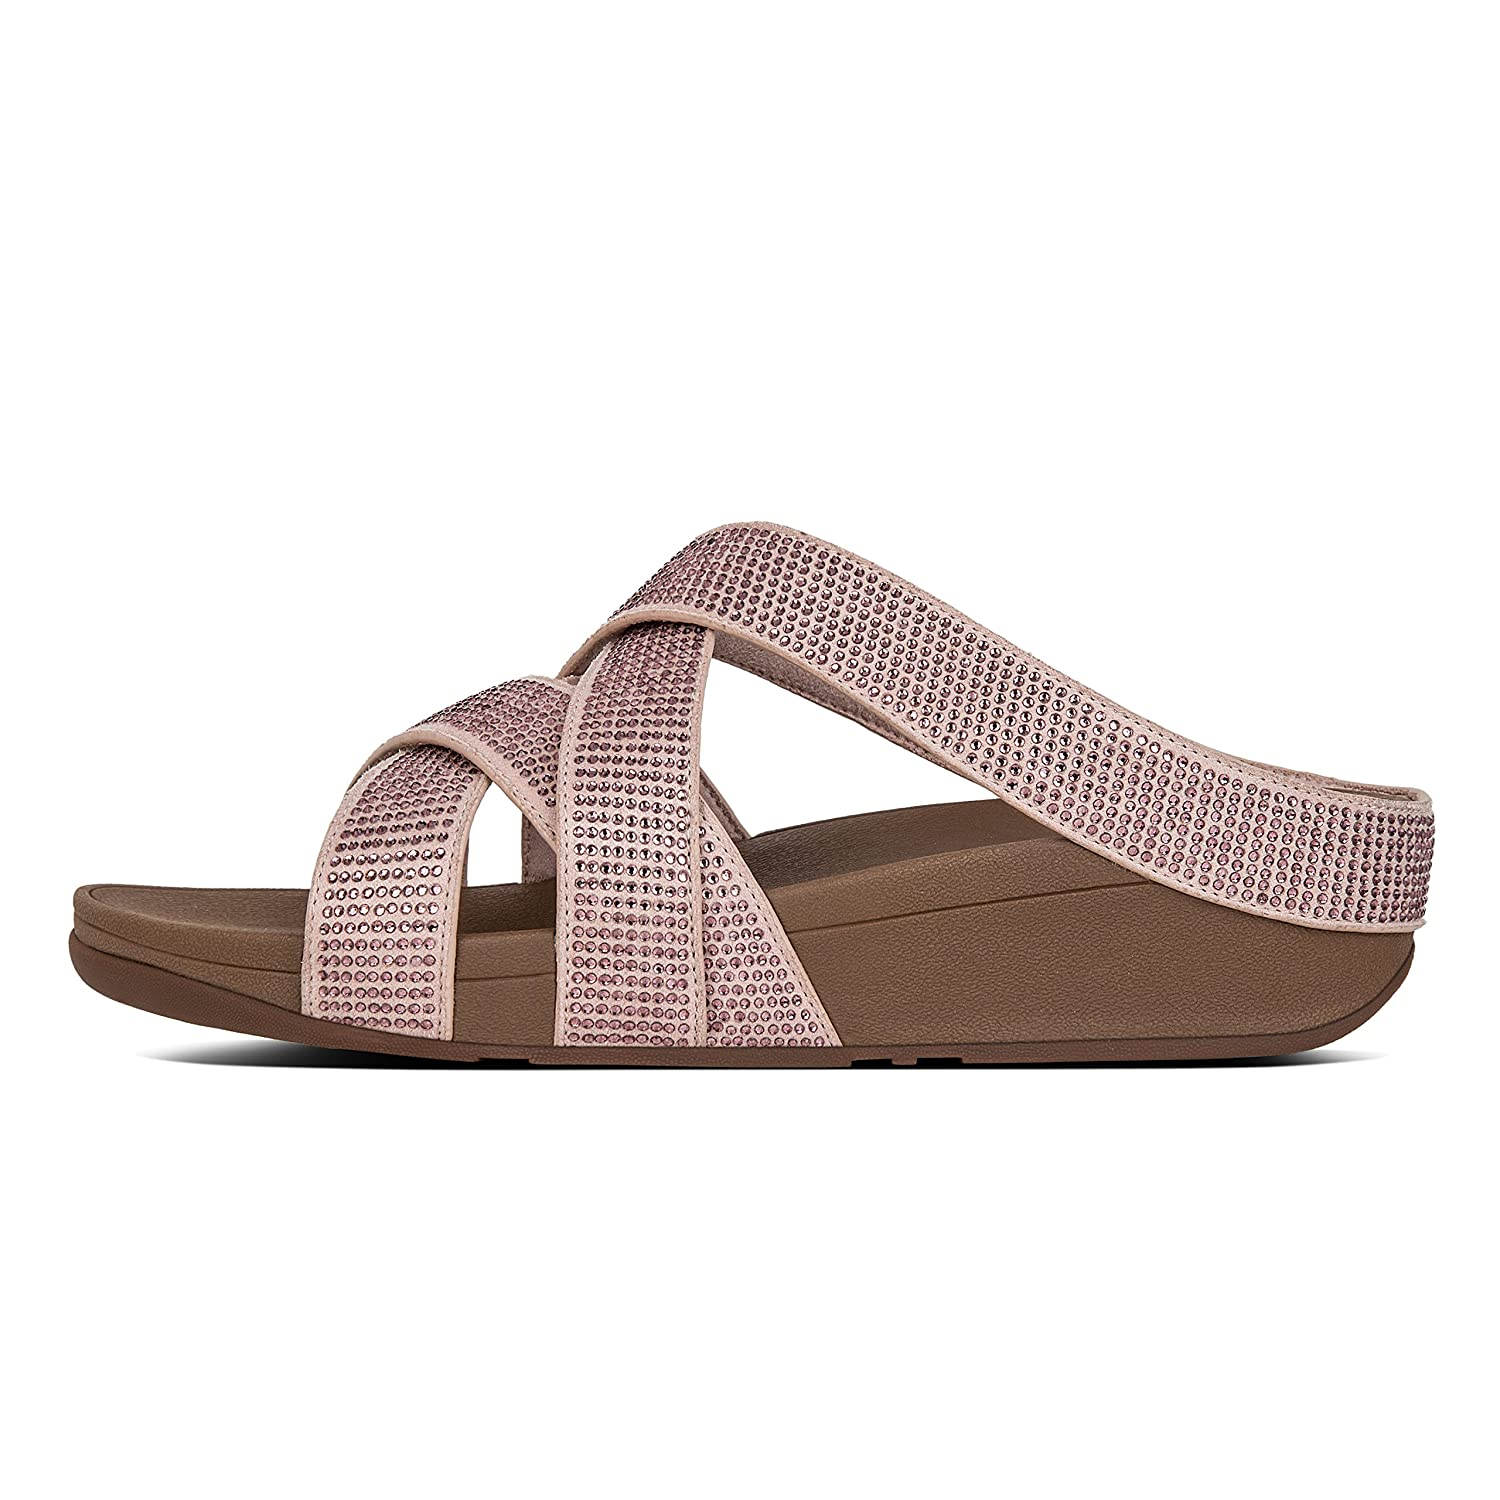 e3a8b05cd Fit Flop Women s Slinky Rokkit Criss Cross Slide Nude Leather Fashion  Sandals - 7 UK India (41 EU)  Buy Online at Low Prices in India - Amazon.in